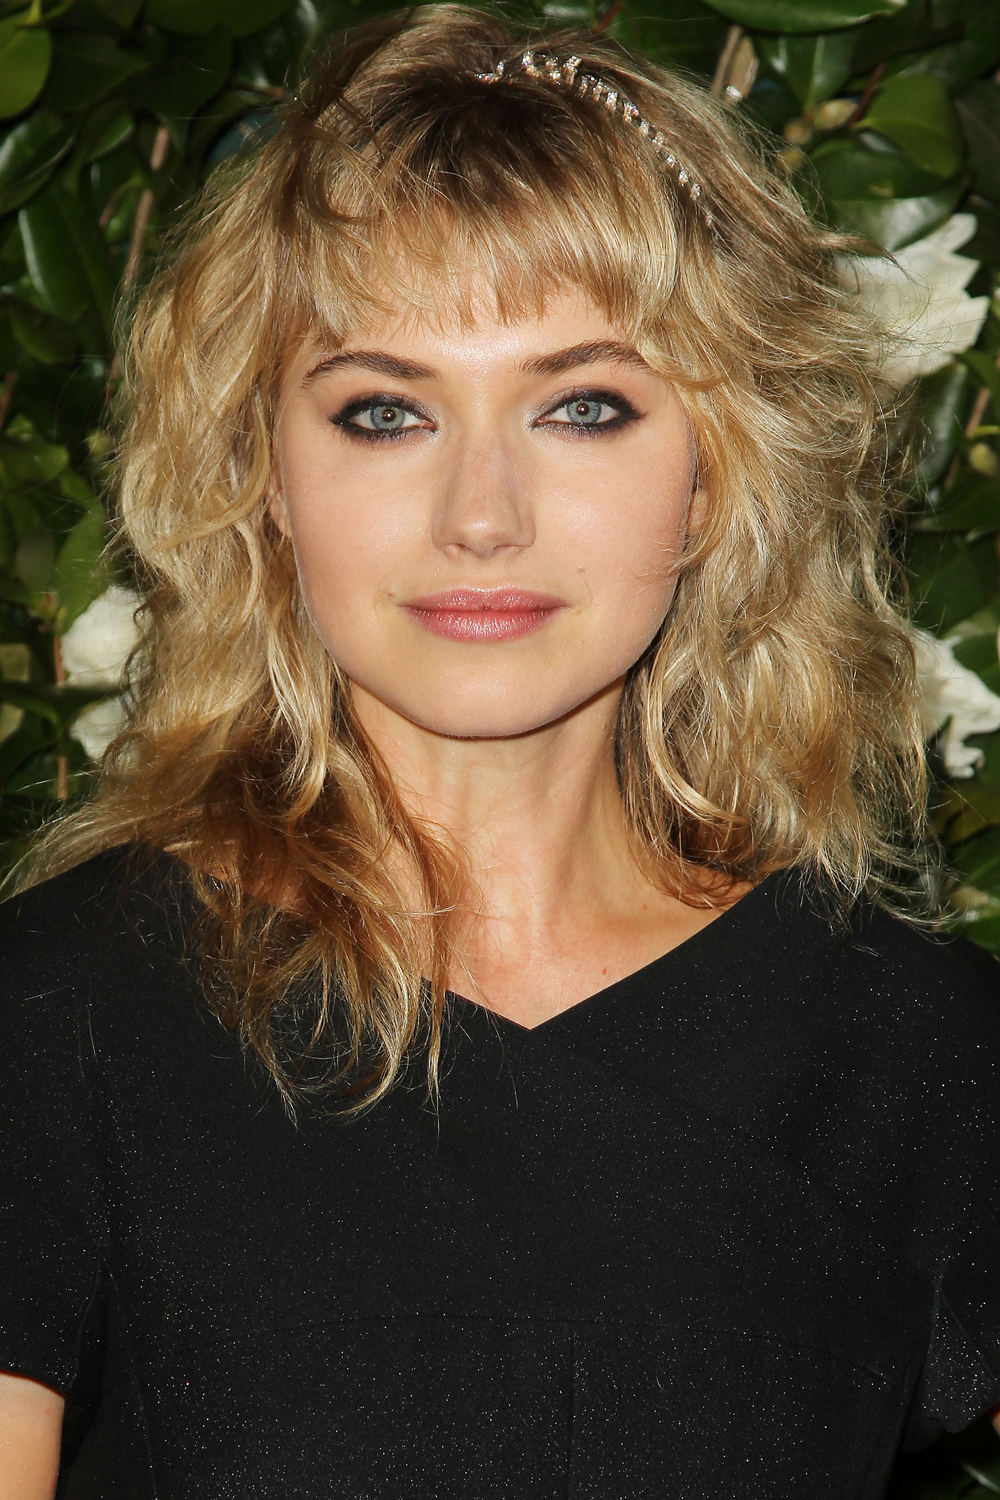 Enjoyable Hairstyles For Round Faces The Best Celebrity Styles To Inspire You Short Hairstyles Gunalazisus